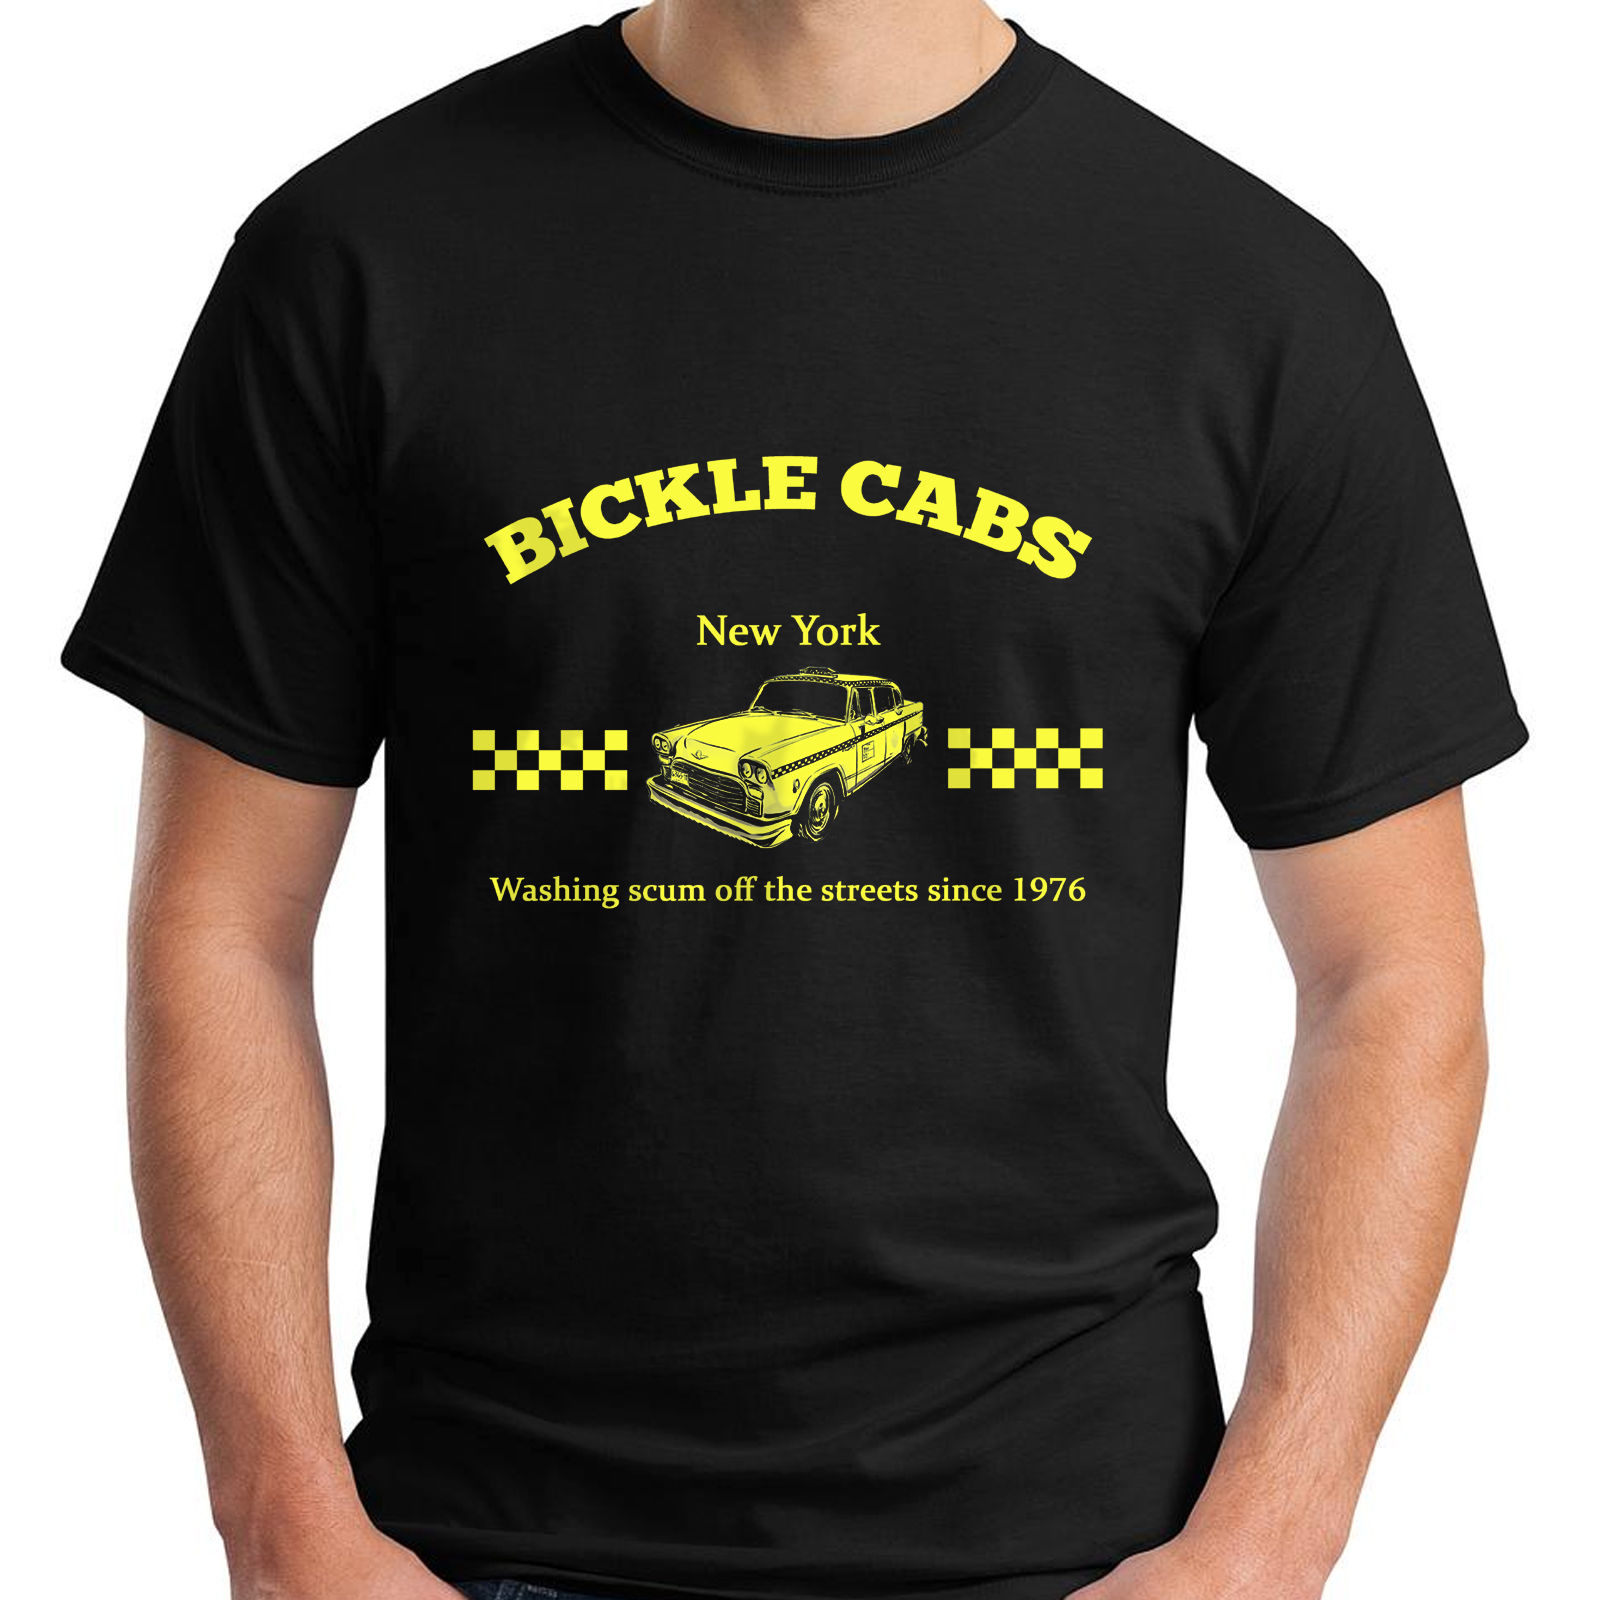 Bickle Cabs T Shirt Inspired by Taxi Driver Cult 70s Movie T-Shirt Size S-3XL Youth Round Collar Customized T-Shirts top tee